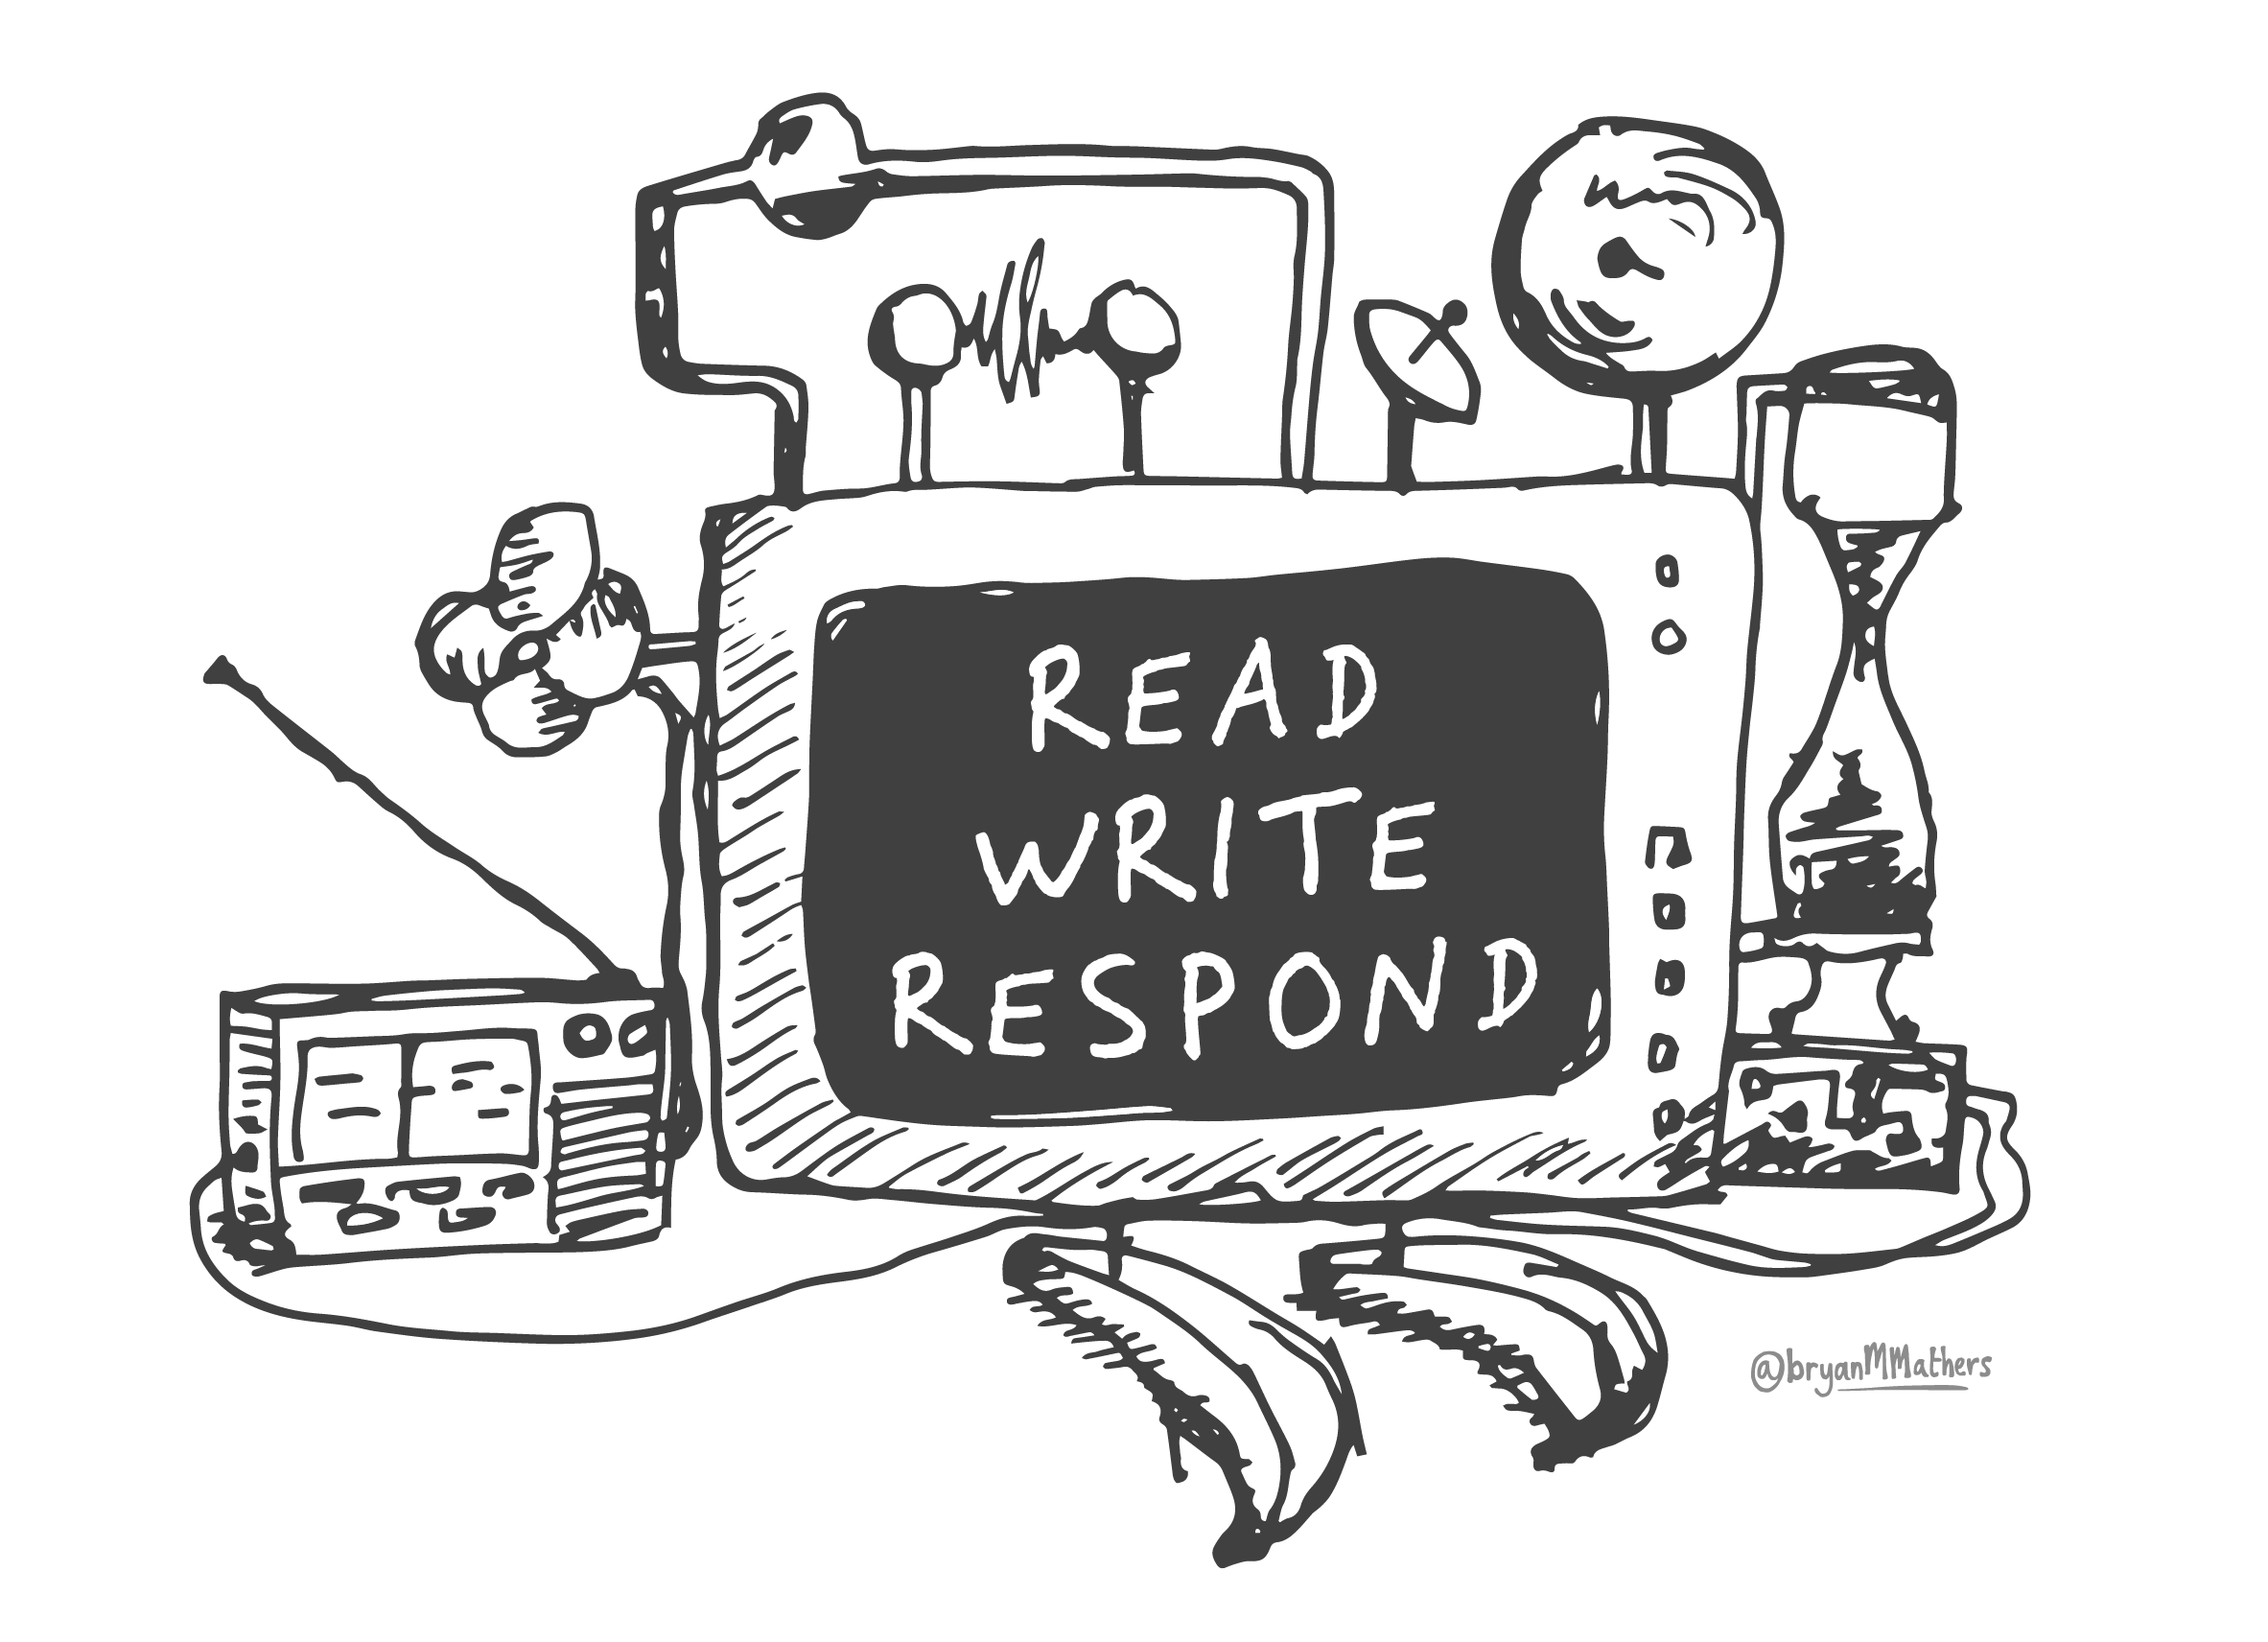 My book report clipart clip art freeuse stock Read Write Review - Voices from the Village in 2017 - Read Write Respond clip art freeuse stock